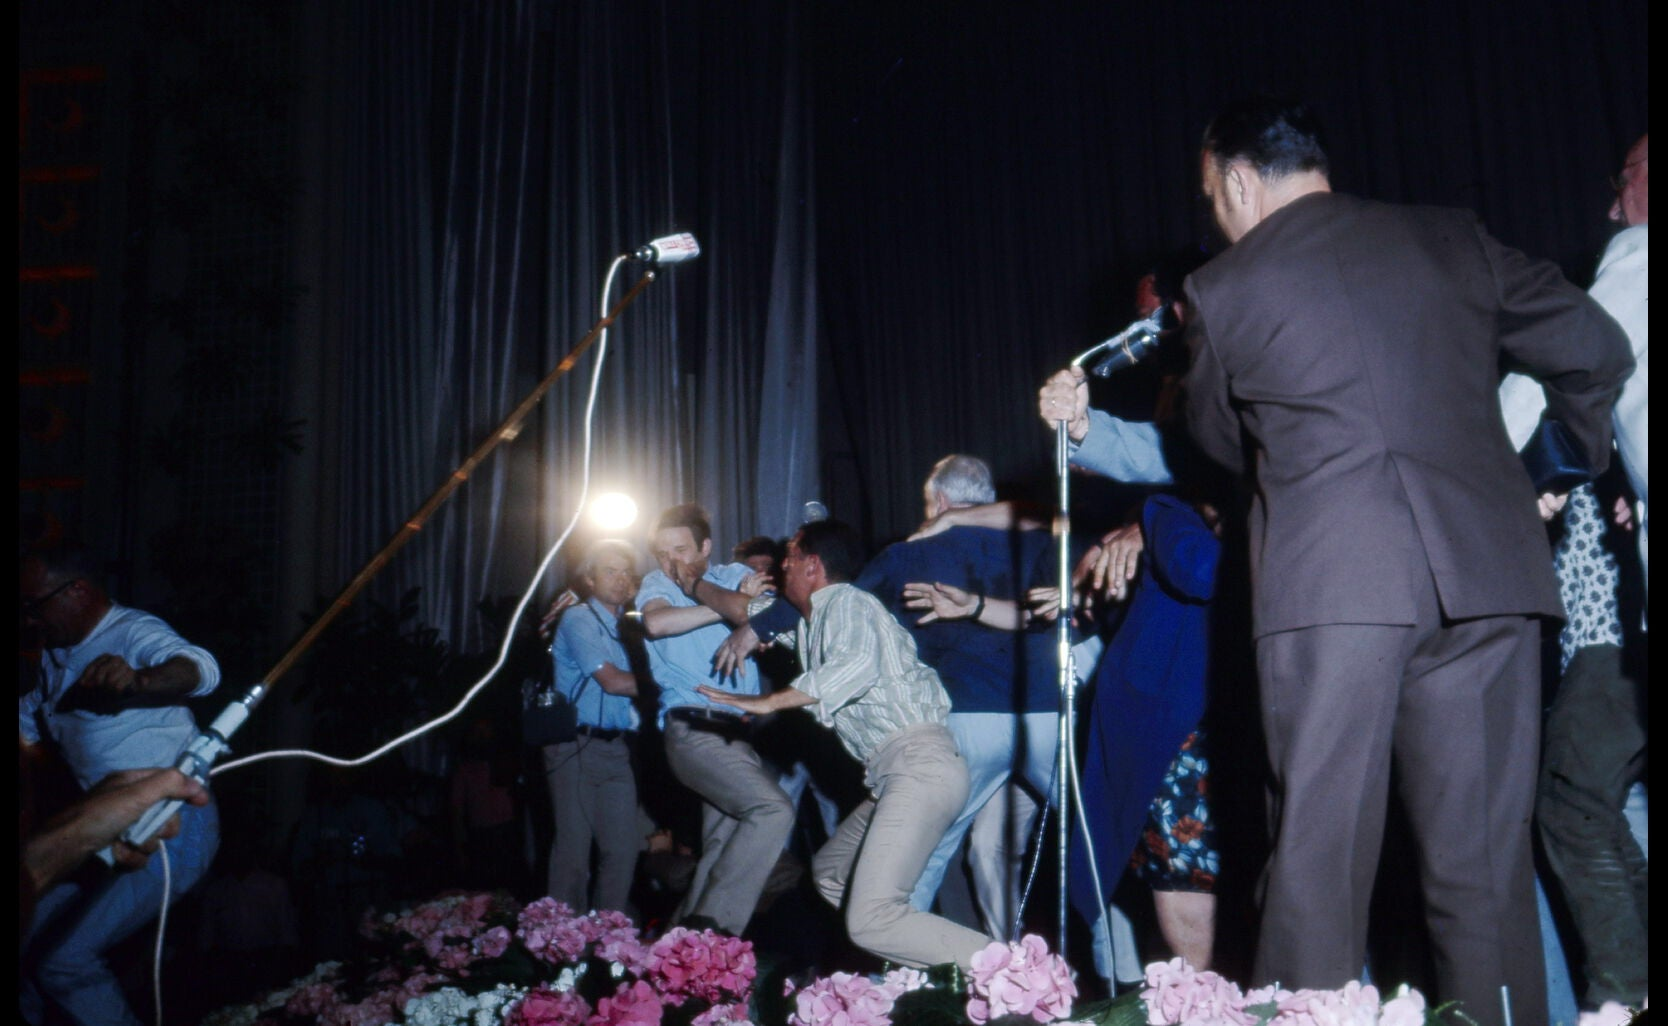 François TRuffait gets hit by a member of the audience at the 21st Cannes Film festival